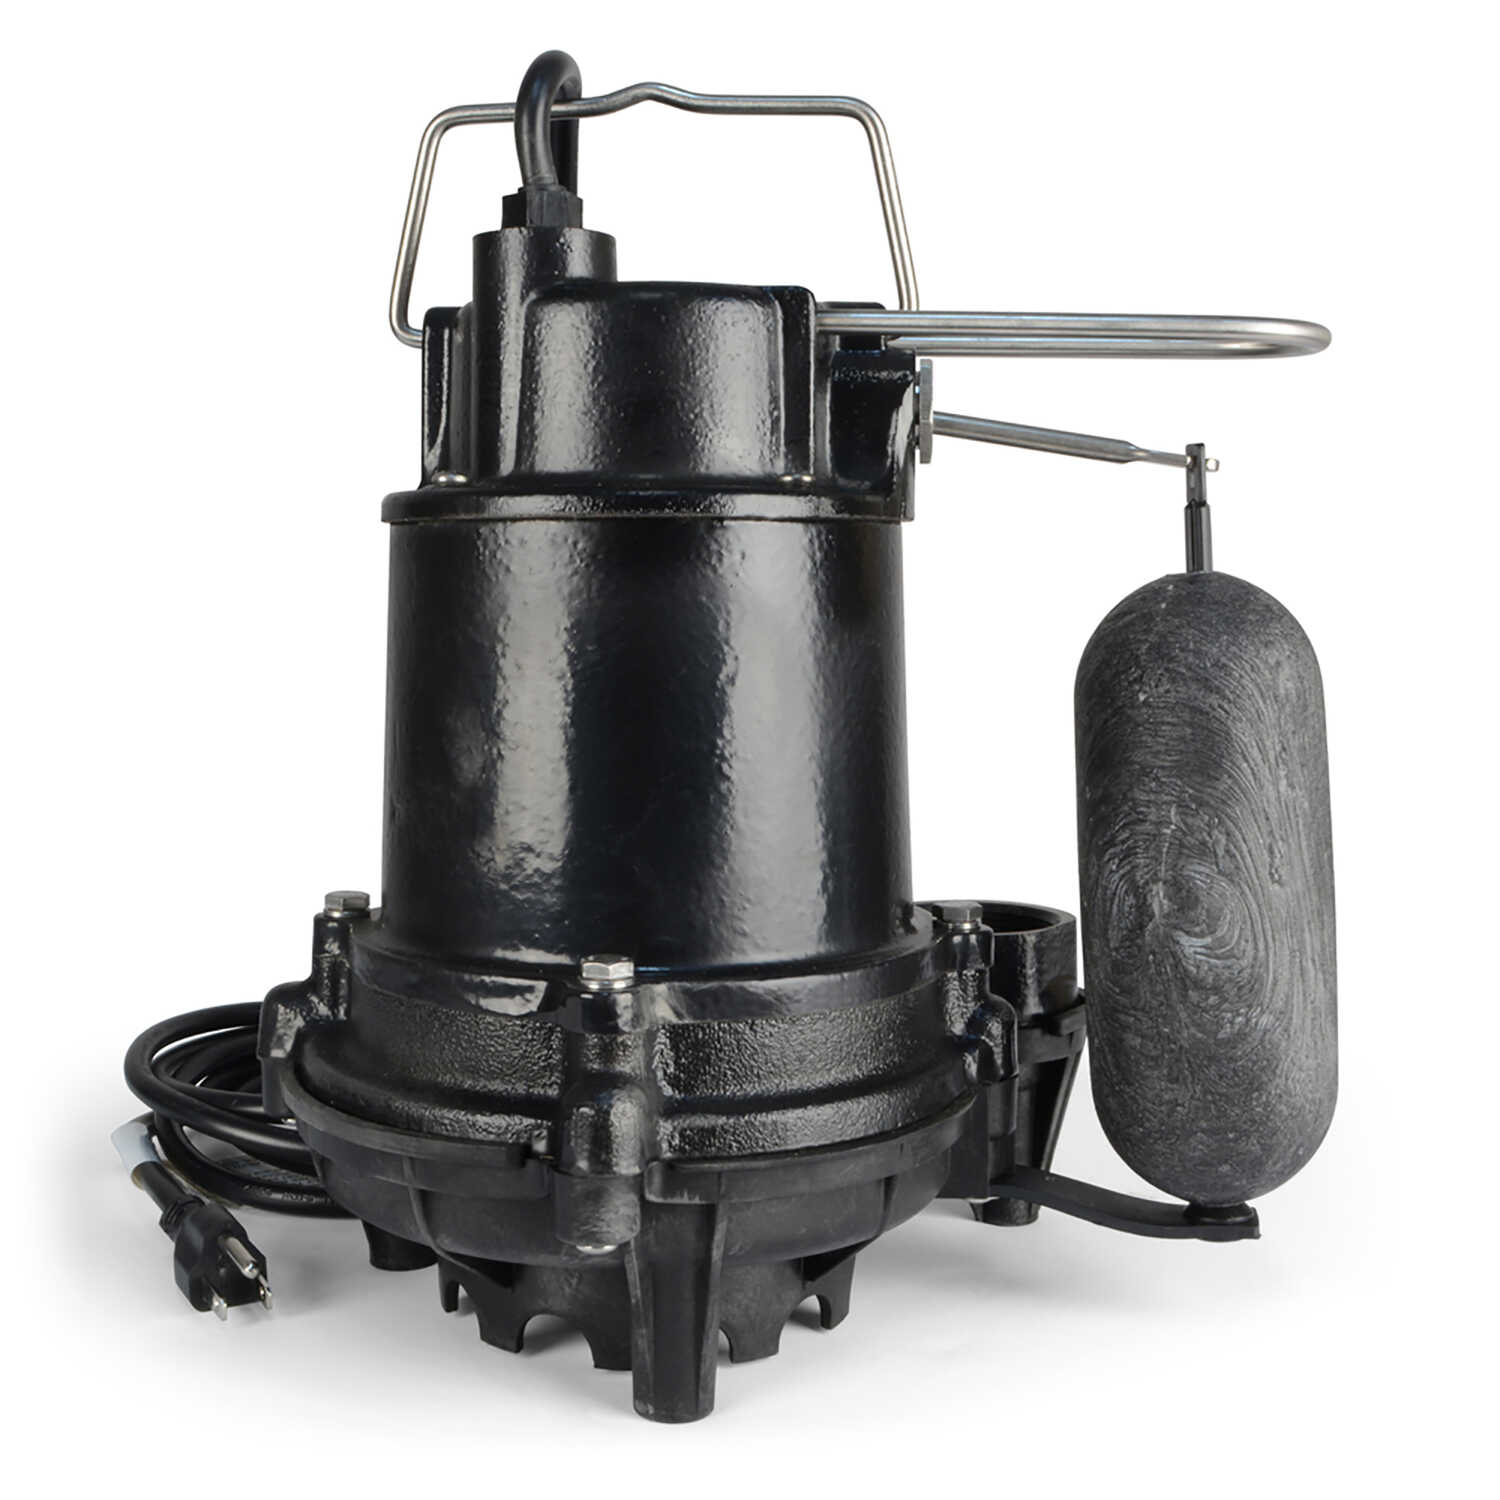 Ecoflo  1/2 hp 5100 gph Cast Iron  Submersible Sump Pump